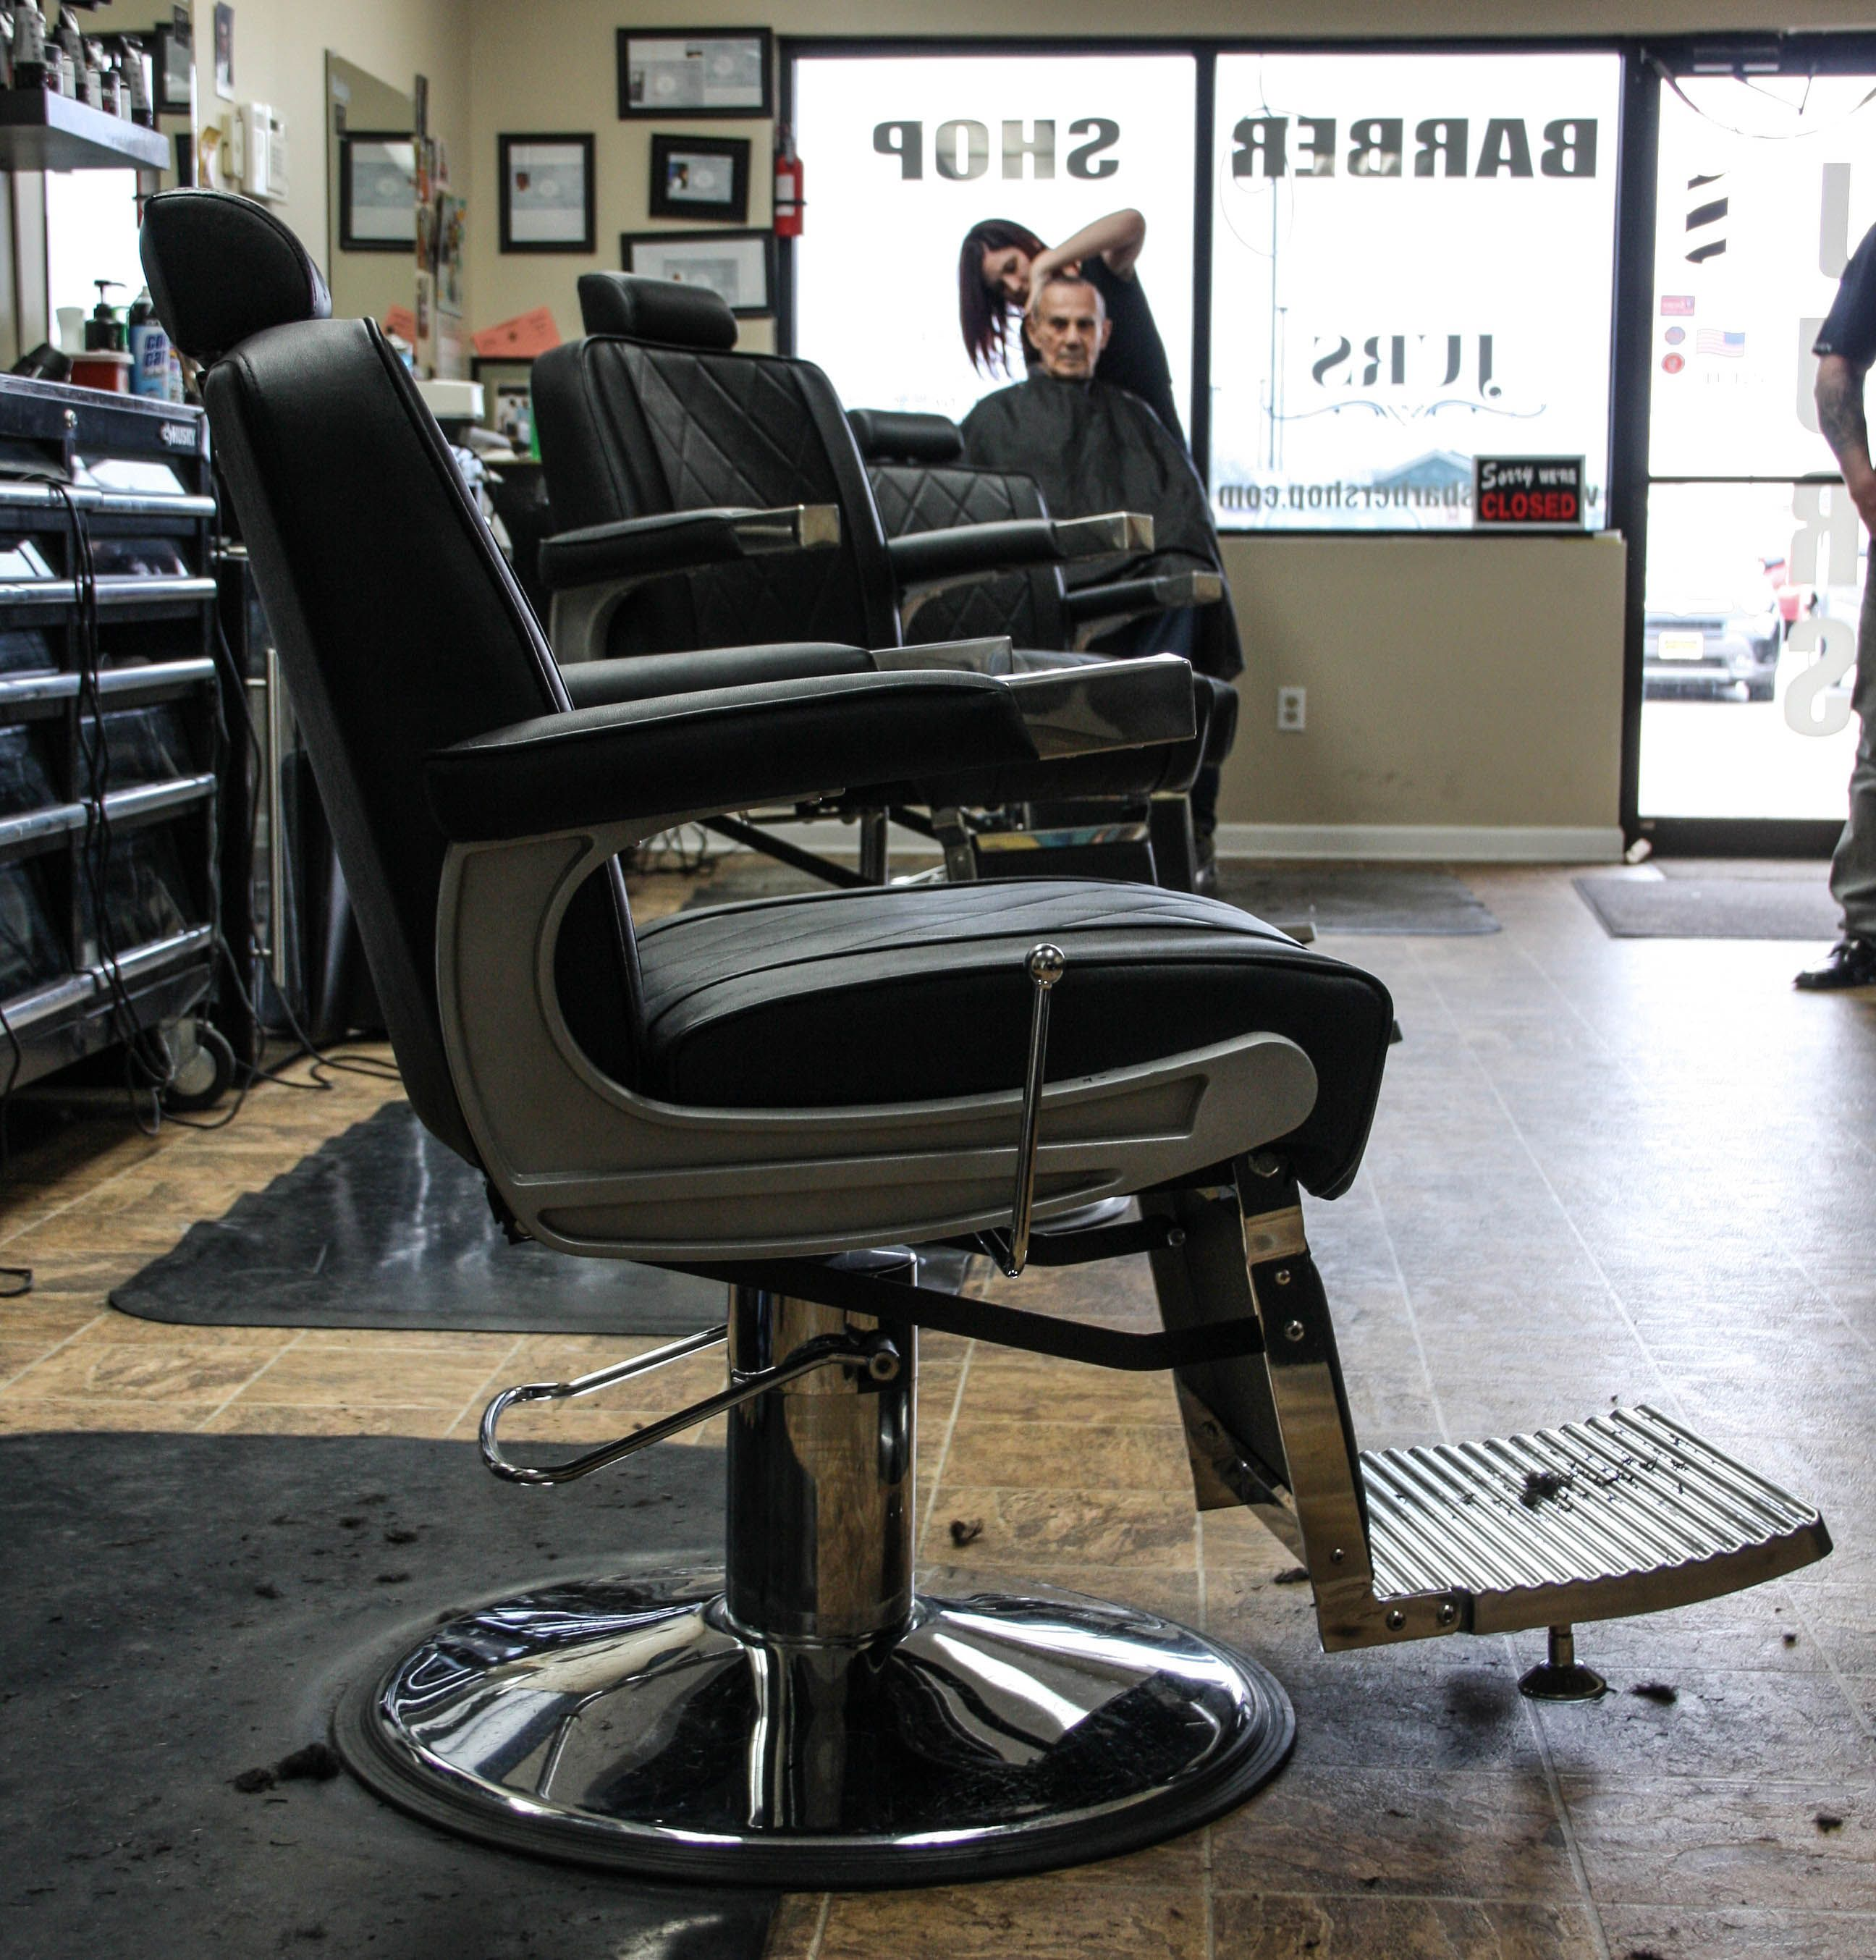 Our Adams Barber Chair looks so Dope at Jurs Barbershop Gates